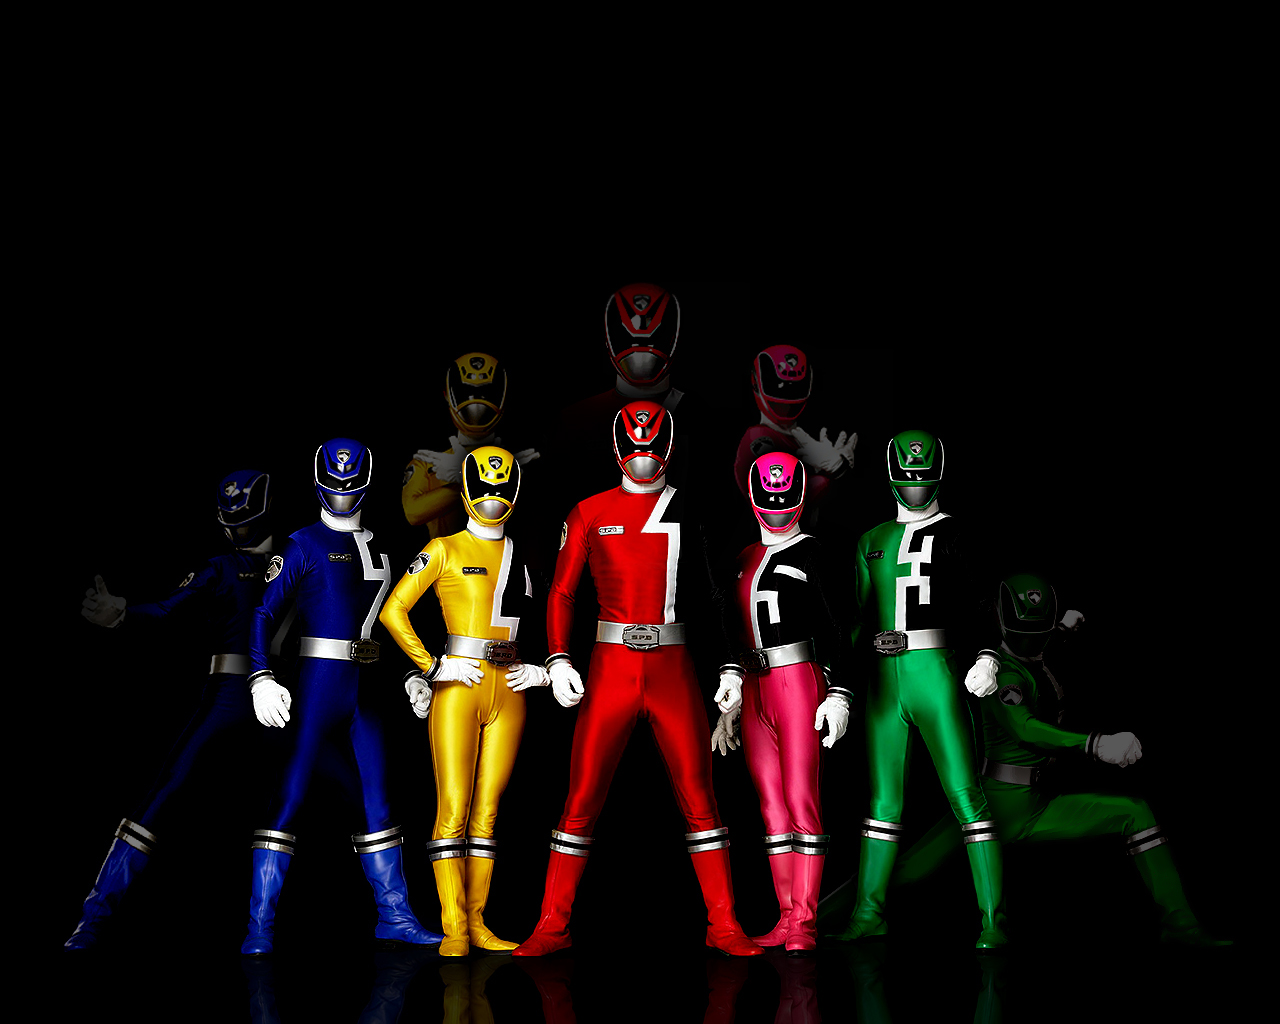 IKKOKDCOCK Complete All Super Sentai Power Rangers Dari Masa